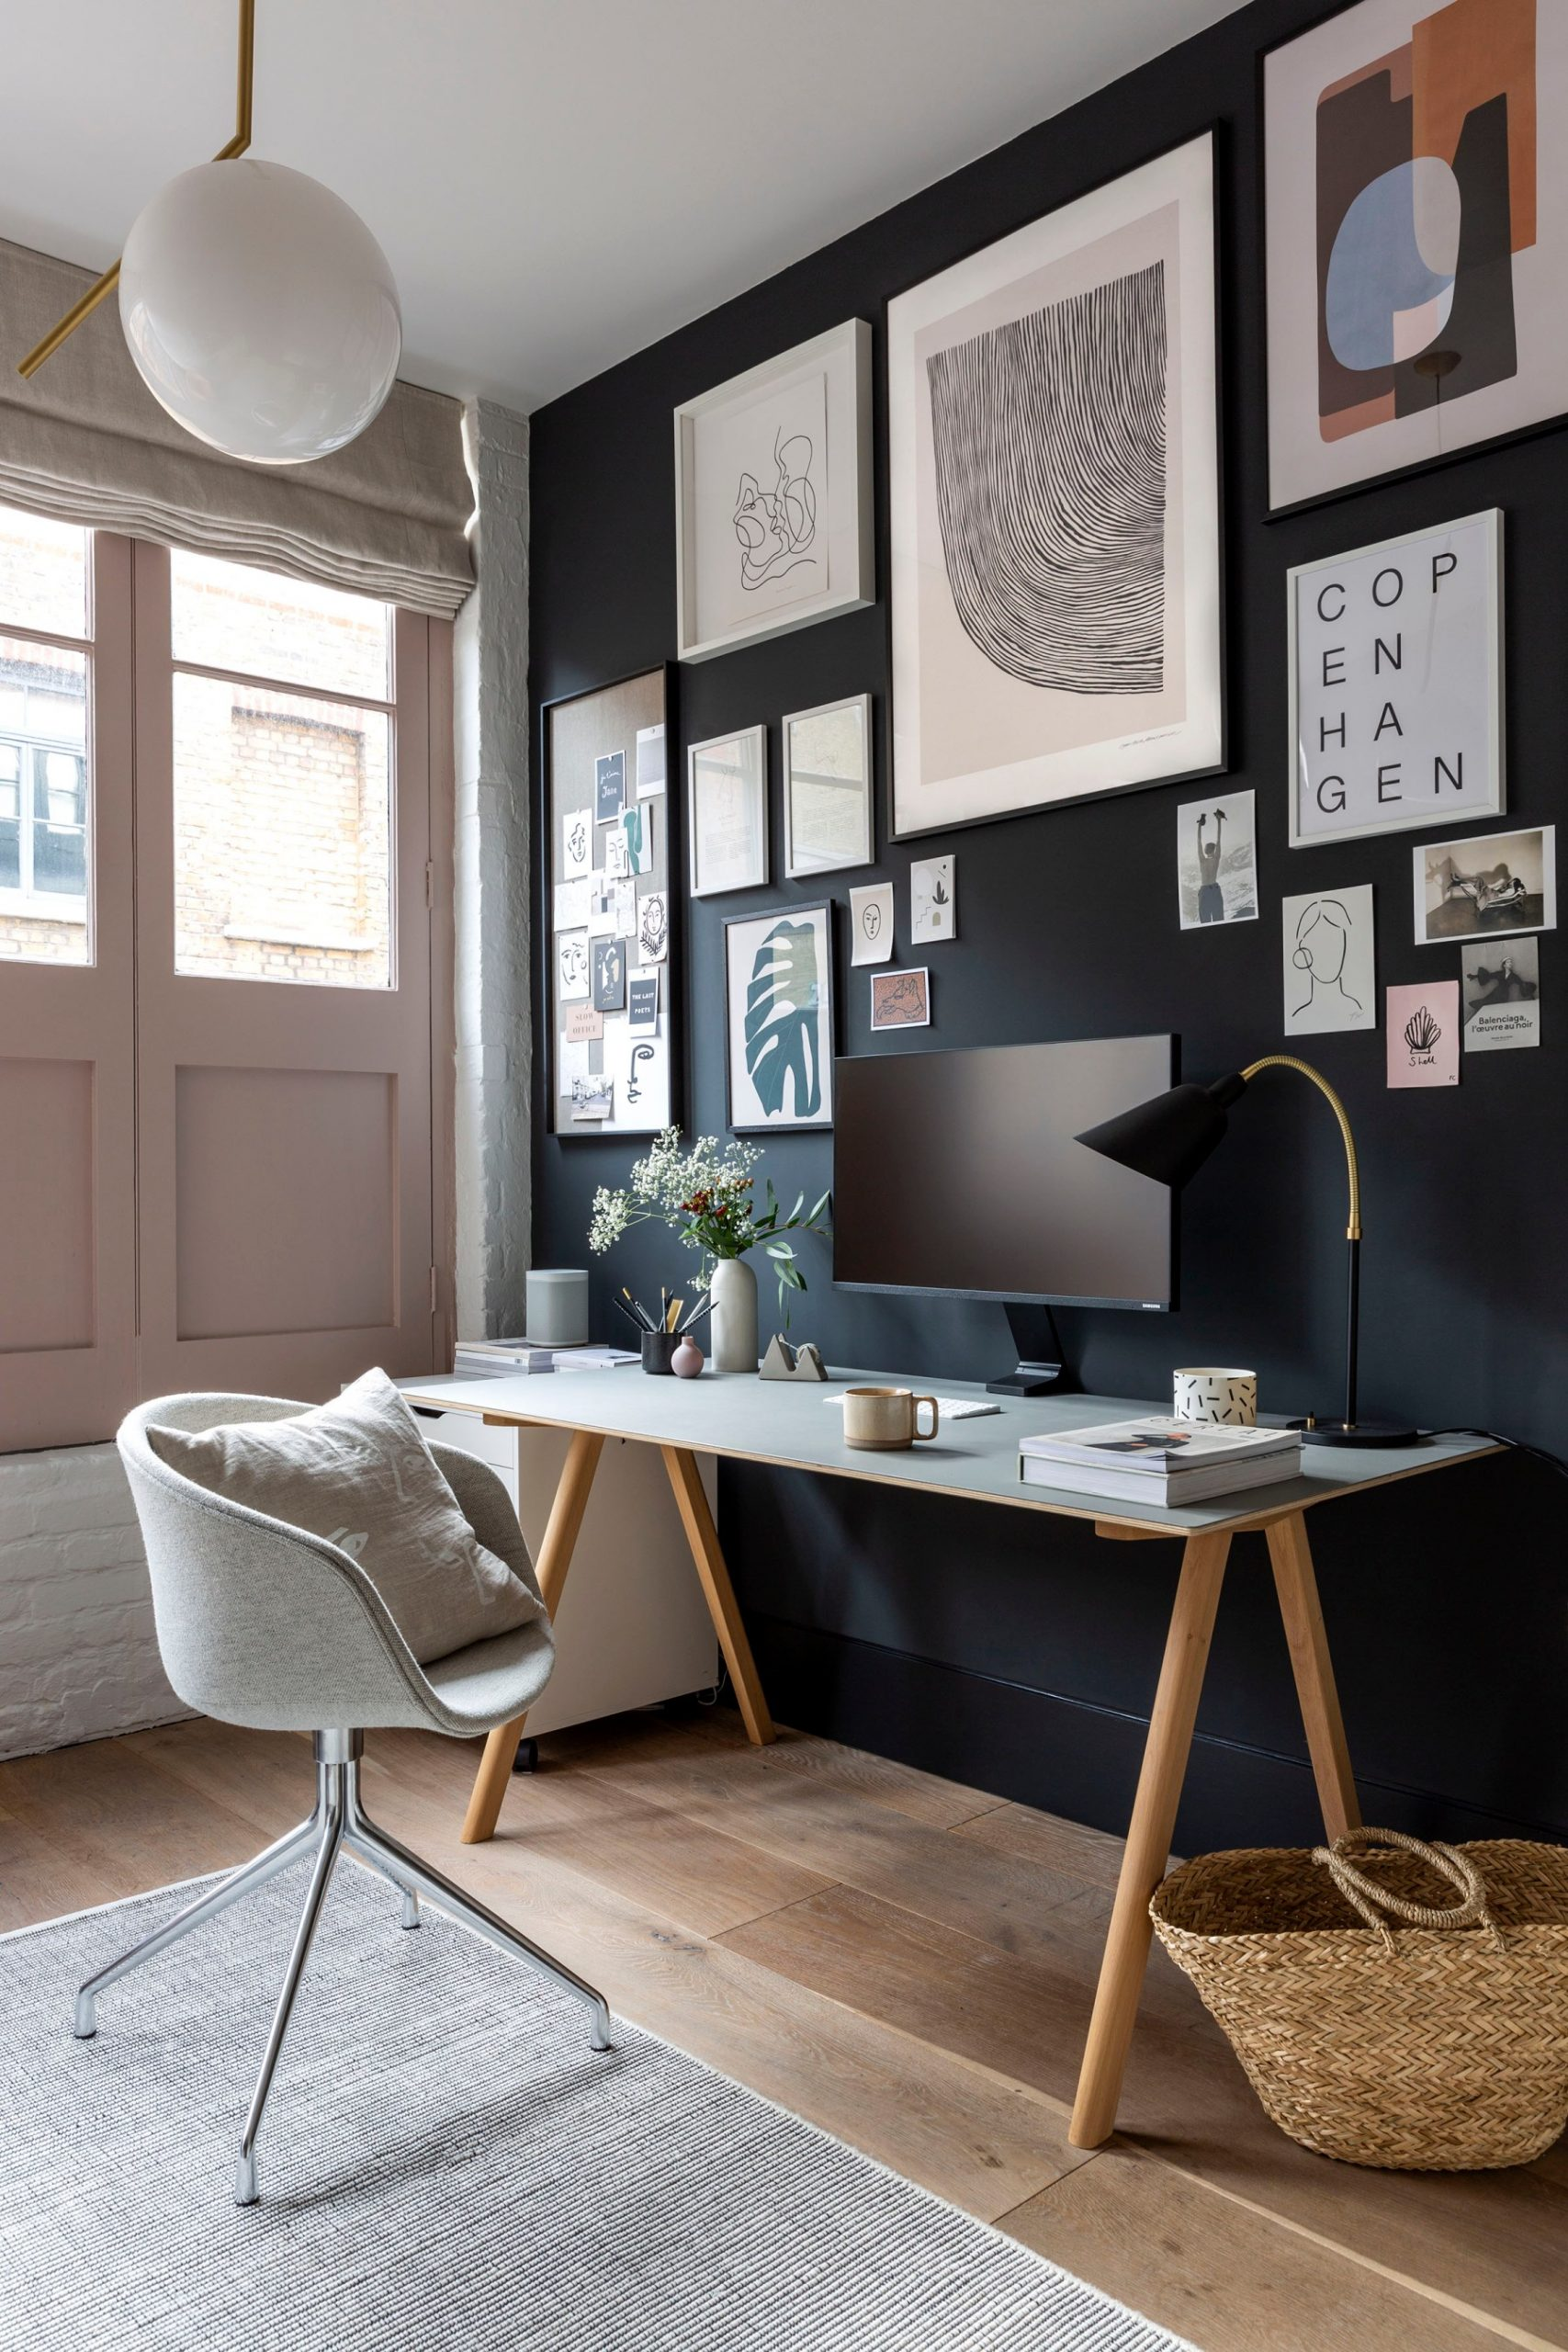 10 Tips To Make It Easy Design Your Home Office